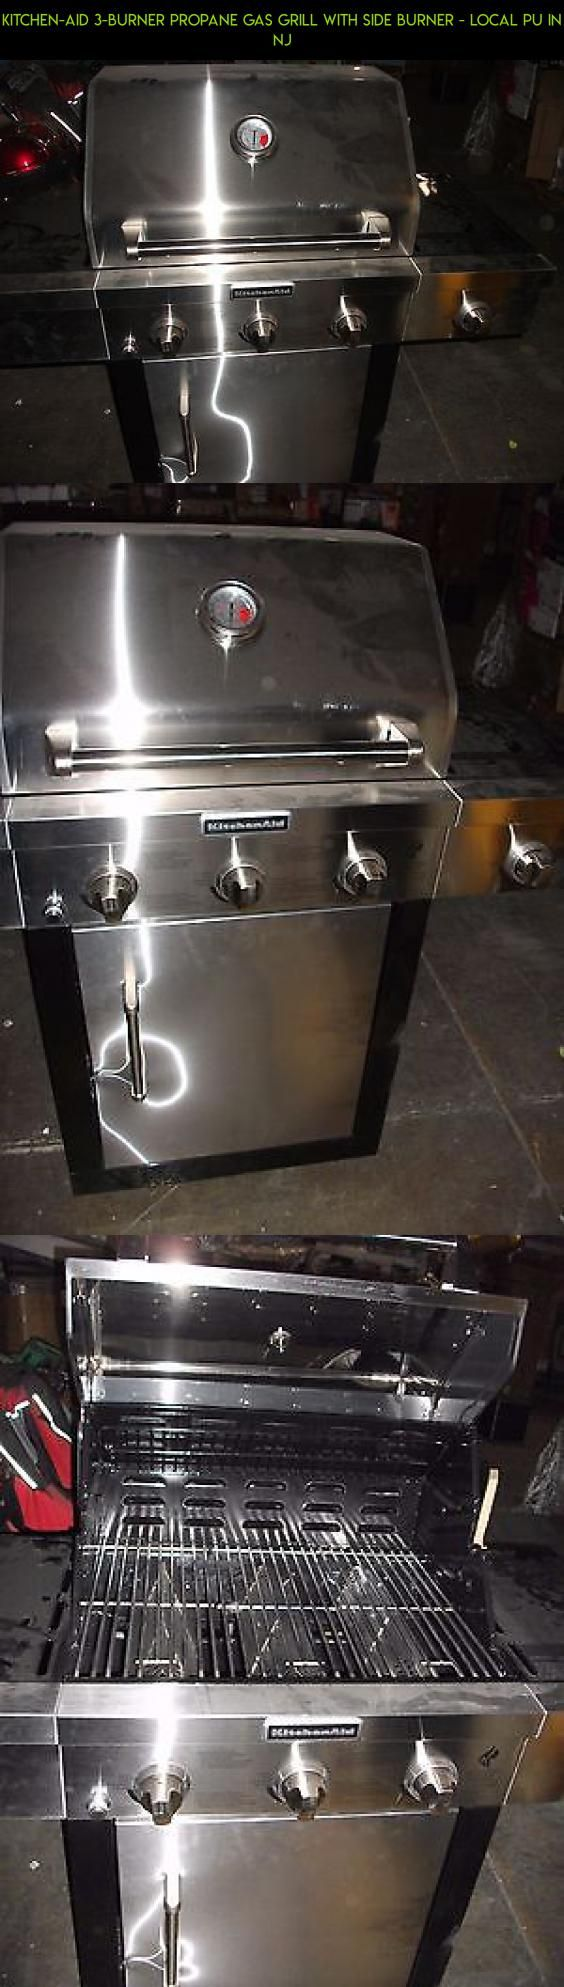 Kitchen-Aid 3-Burner Propane Gas Grill with Side Burner - Local PU in NJ #kitchen #grills #camera #tech #technology #kit #aid #parts #drone #gadgets #racing #products #plans #shopping #fpv